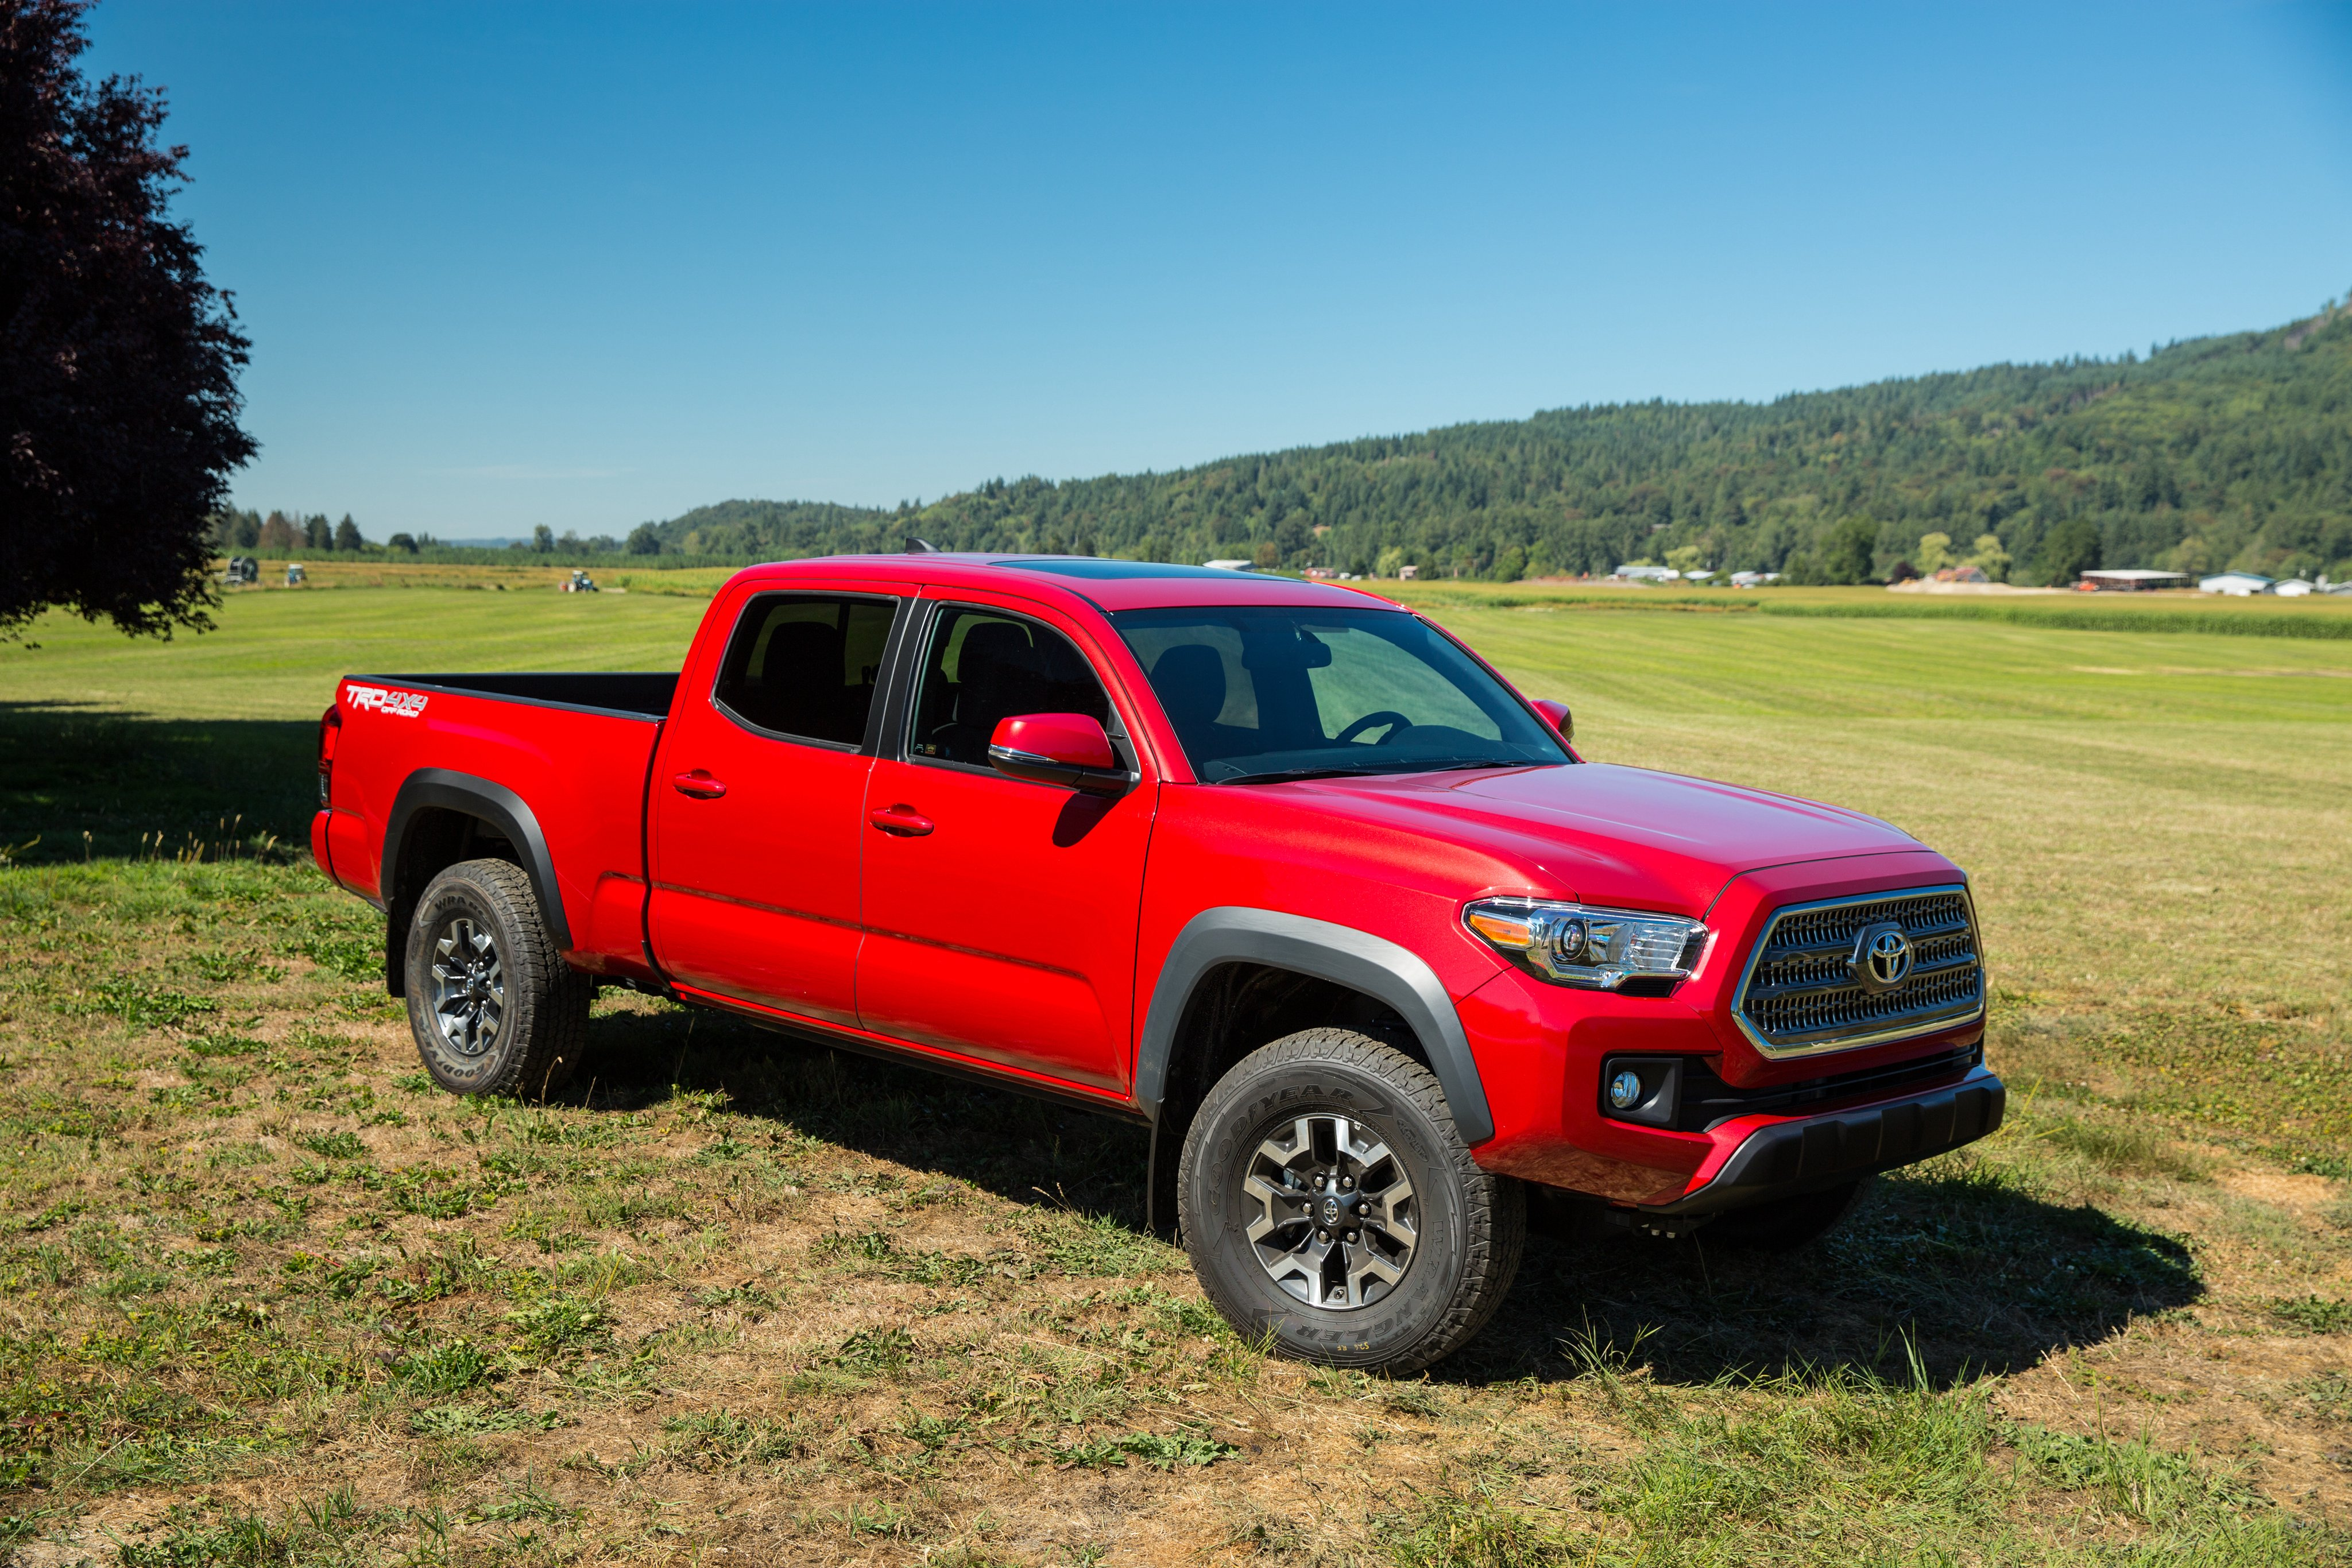 2016 toyota tacoma trd offroad double cab pickup 4x4 wallpaper 4096x2731 782590 wallpaperup. Black Bedroom Furniture Sets. Home Design Ideas